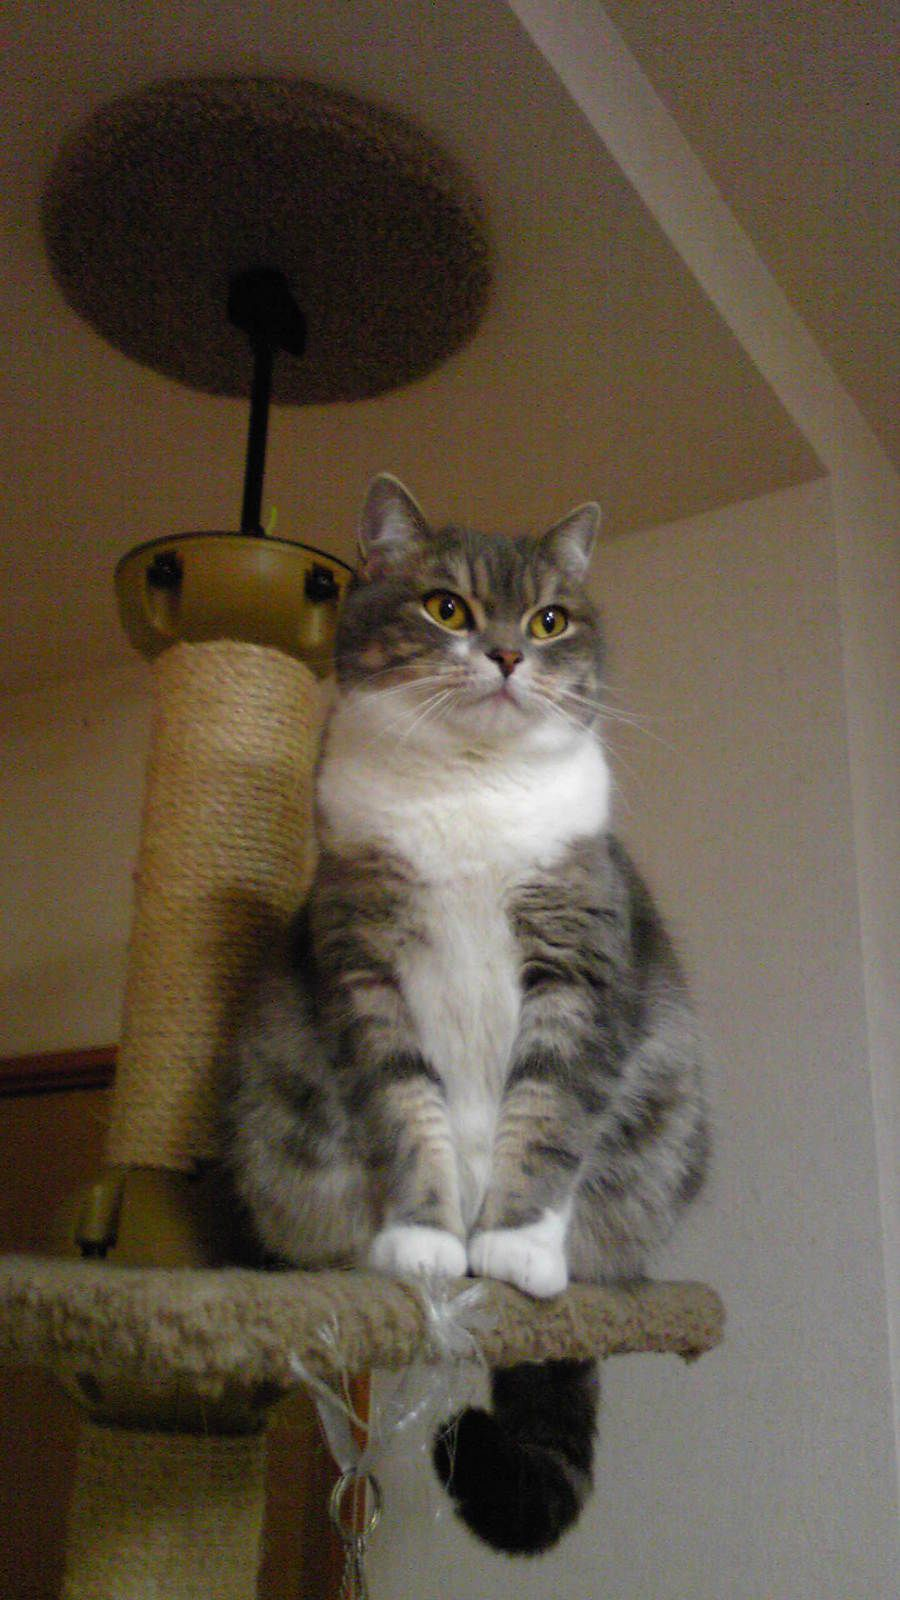 Cat atop a scratching post.